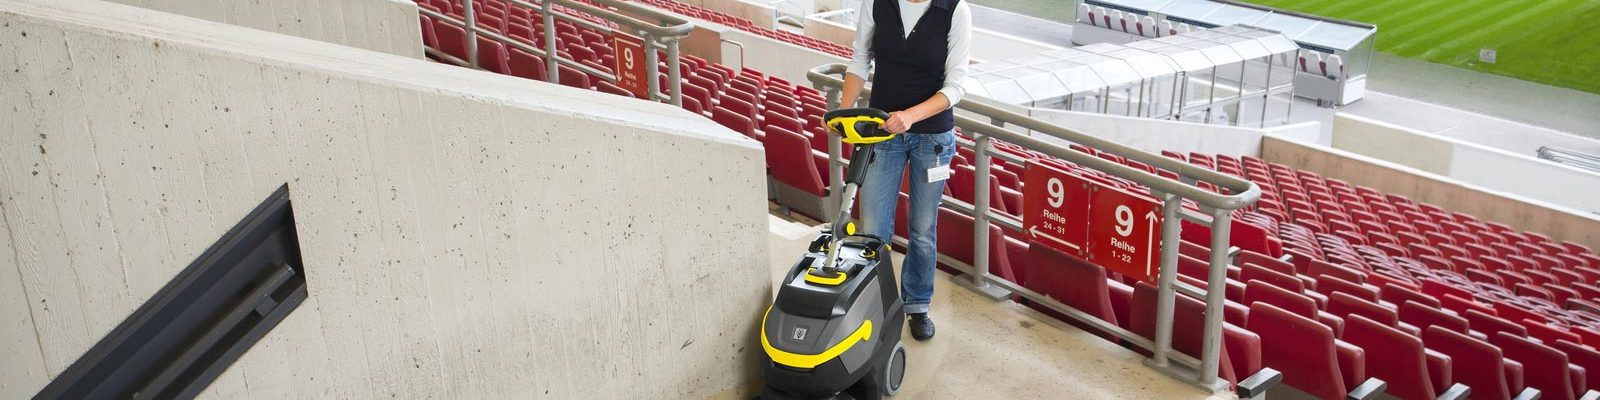 Scrubber dryer cleaning a football stadium